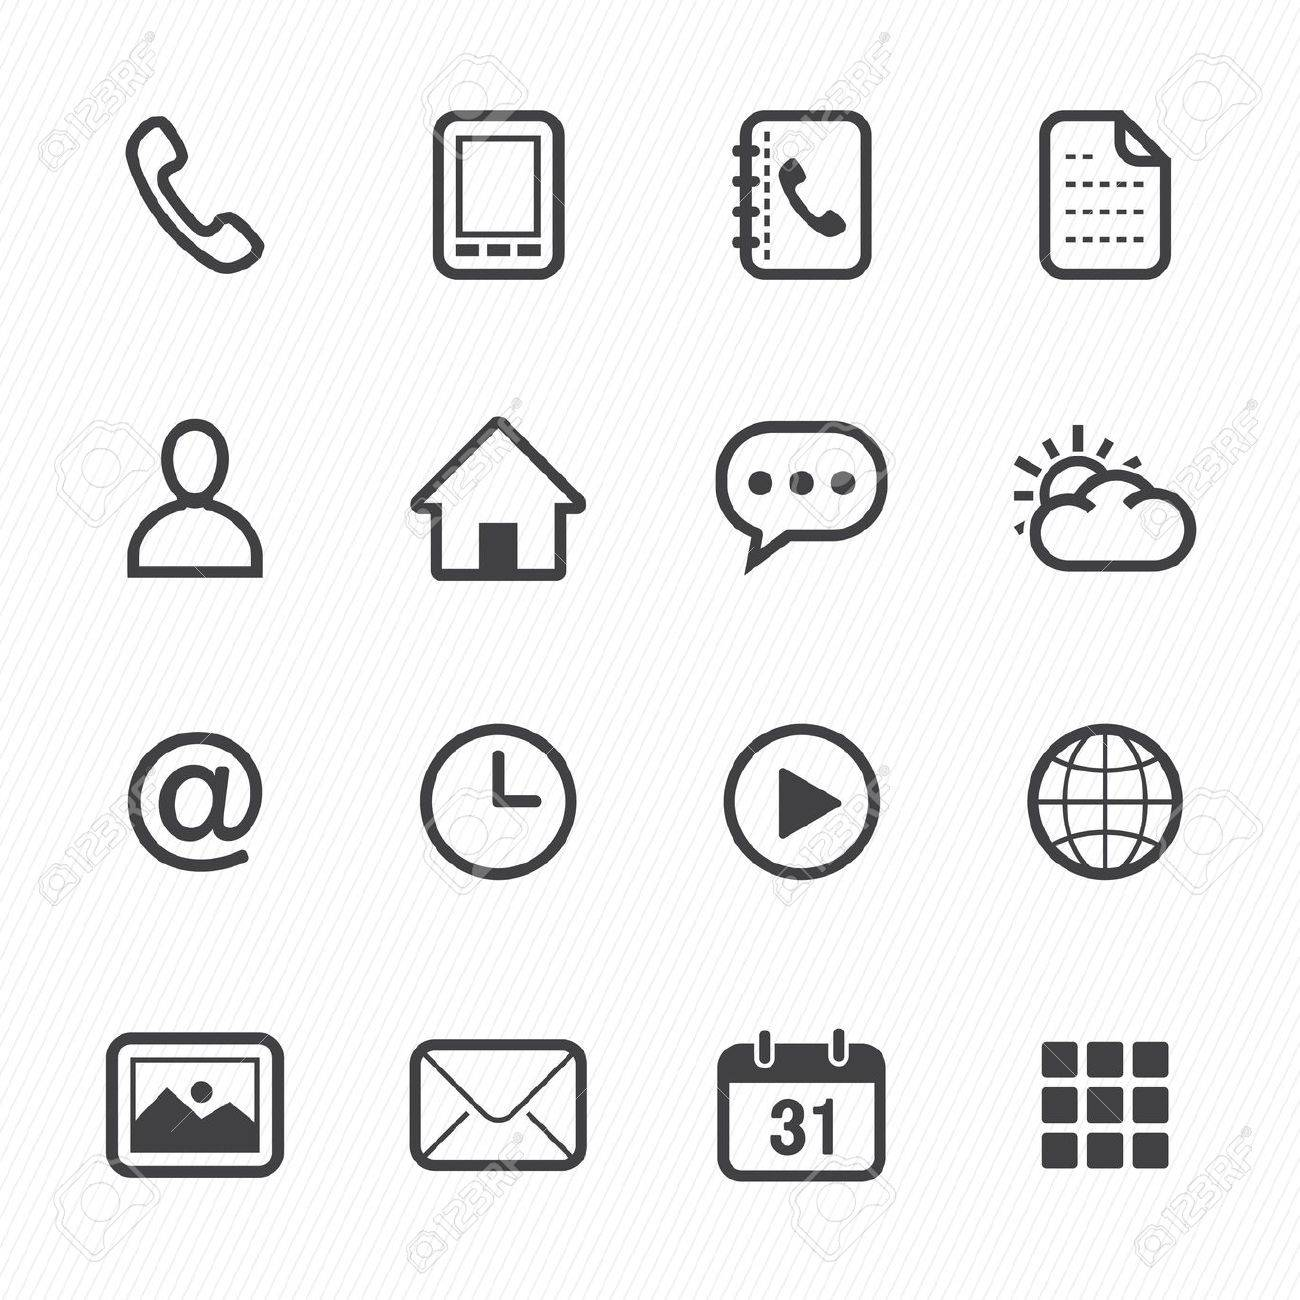 Mobile Phone Icons with White Background Stock Vector - 20232822